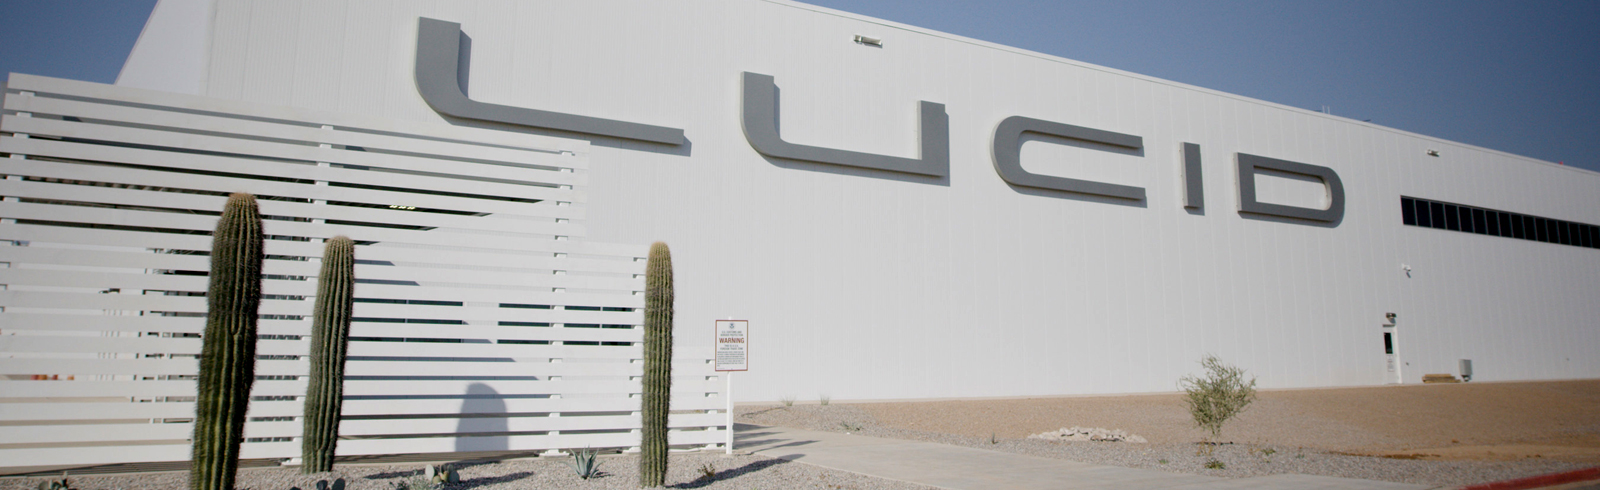 Lucid Motors completes the first construction phase of its Lucid AMP-1 plant in Arizona